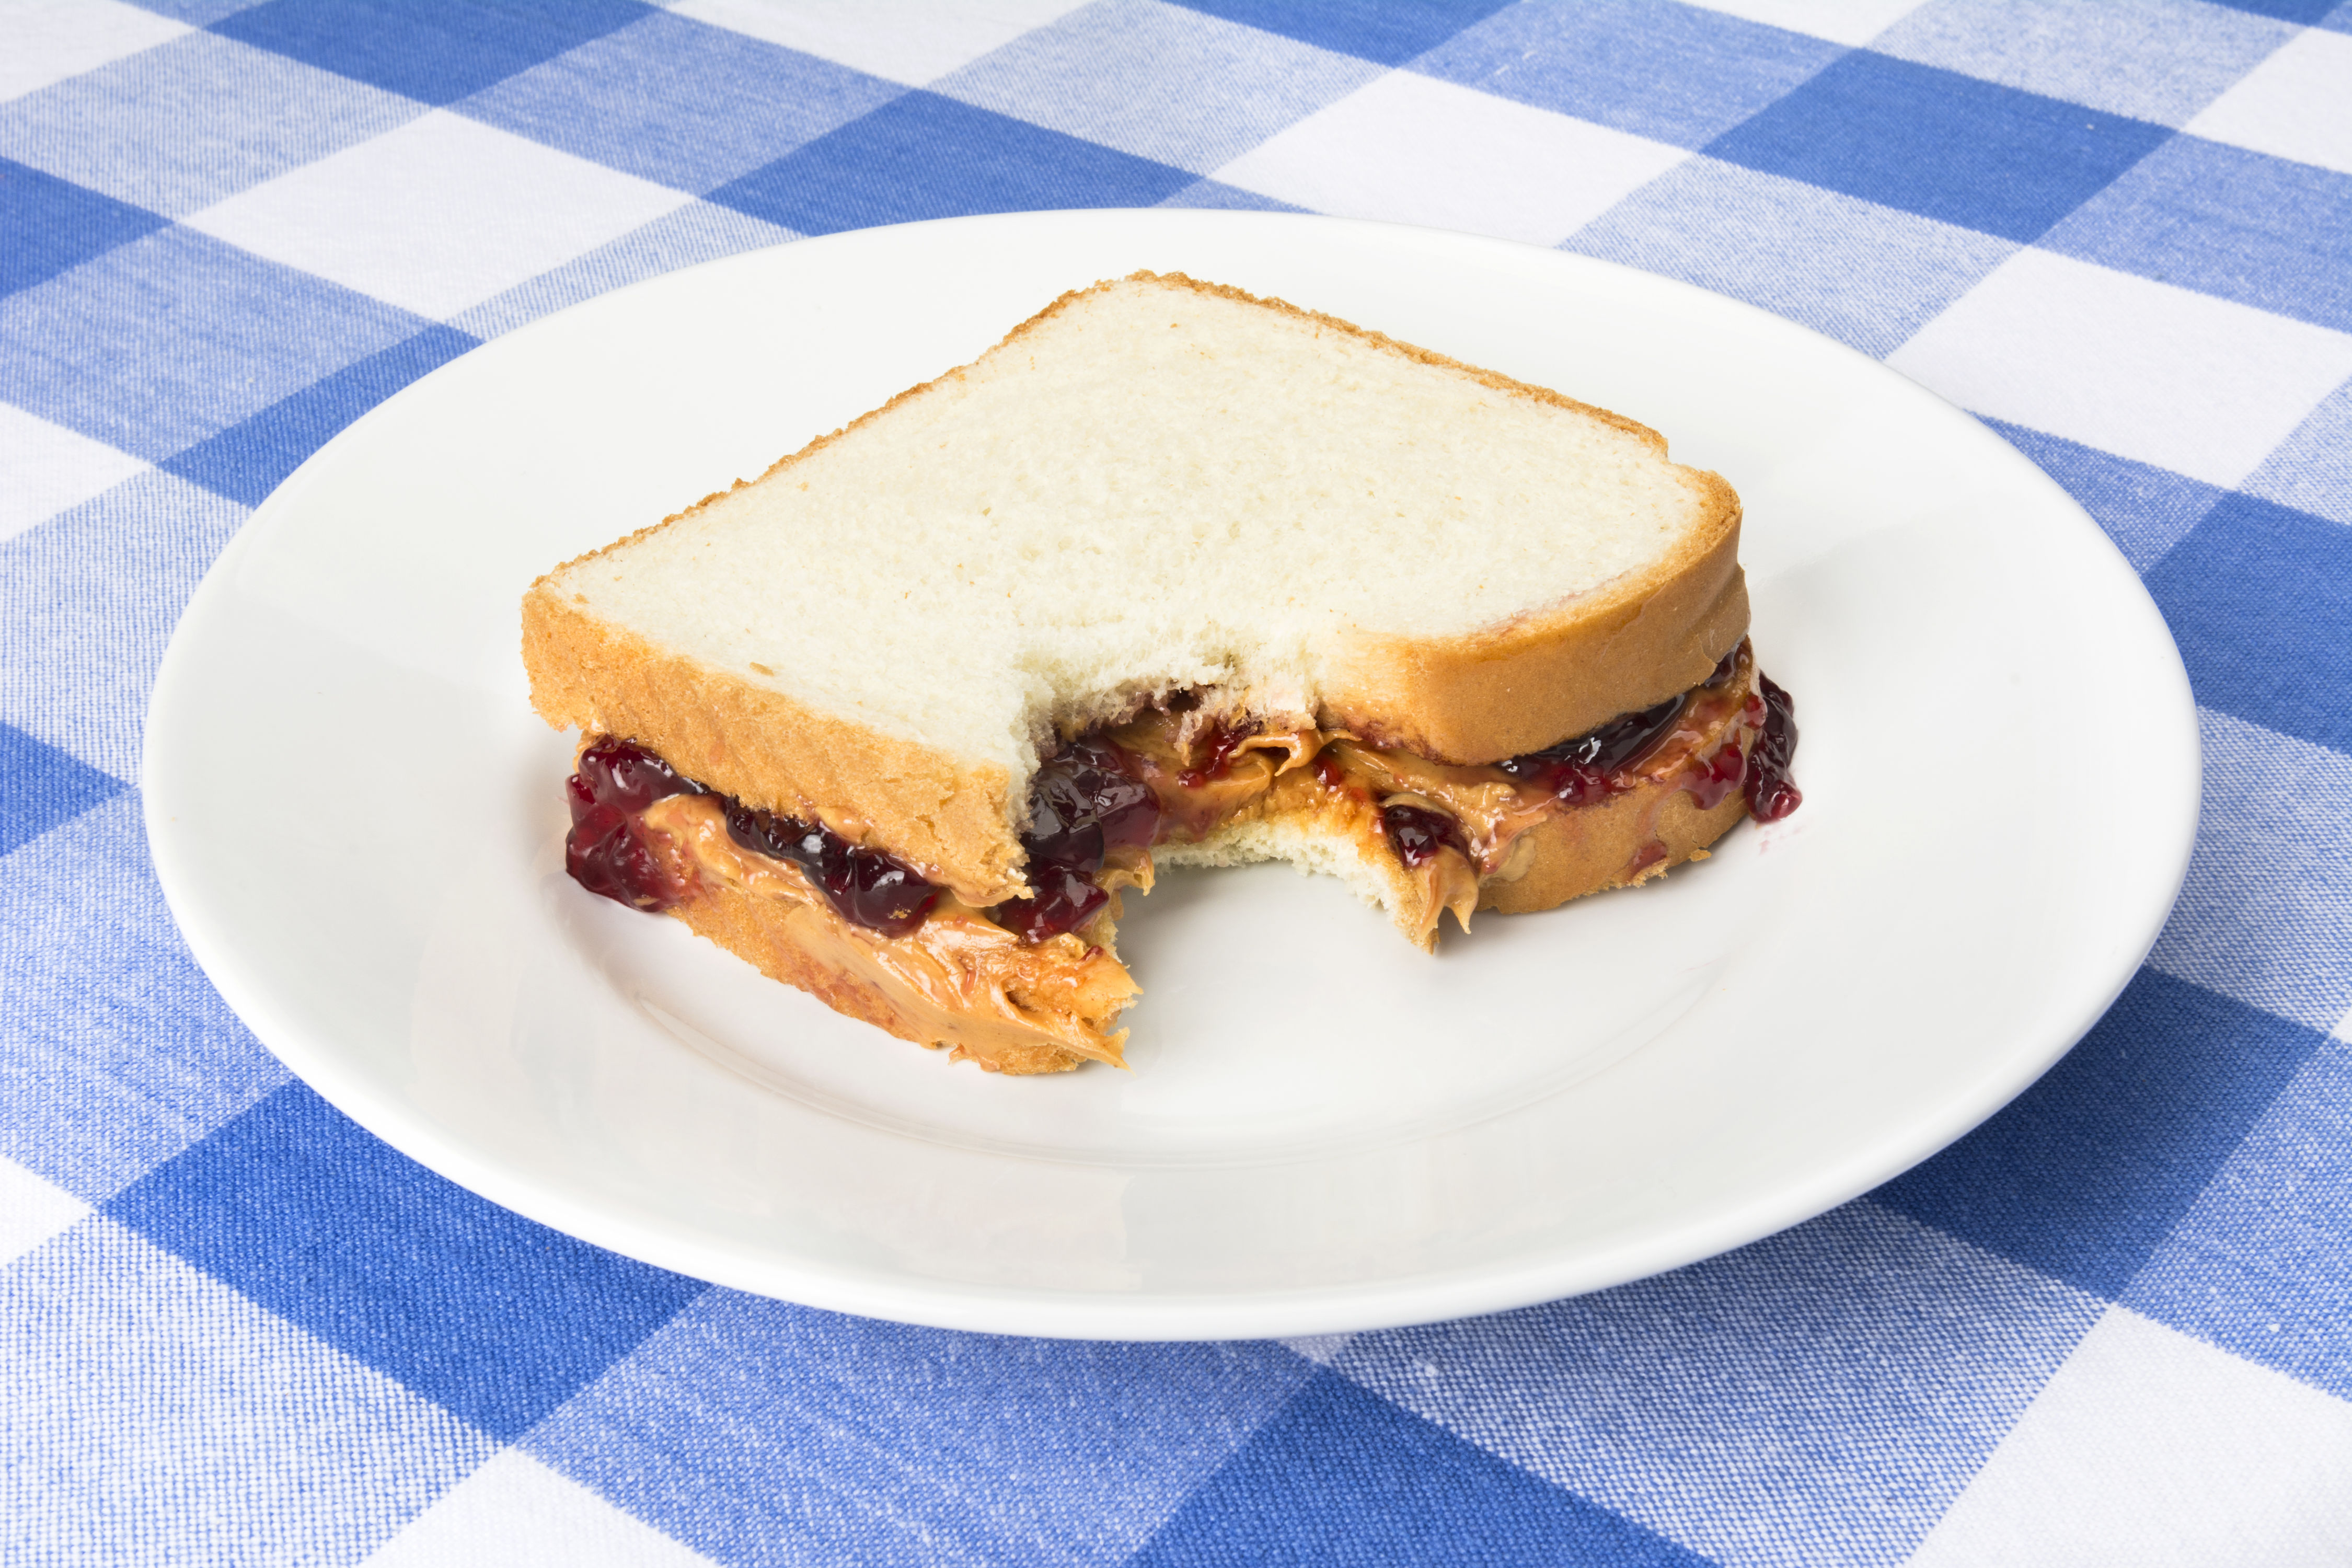 People Are Arguing over the Right Way to Make a Peanut Butter and Jelly Sandwich